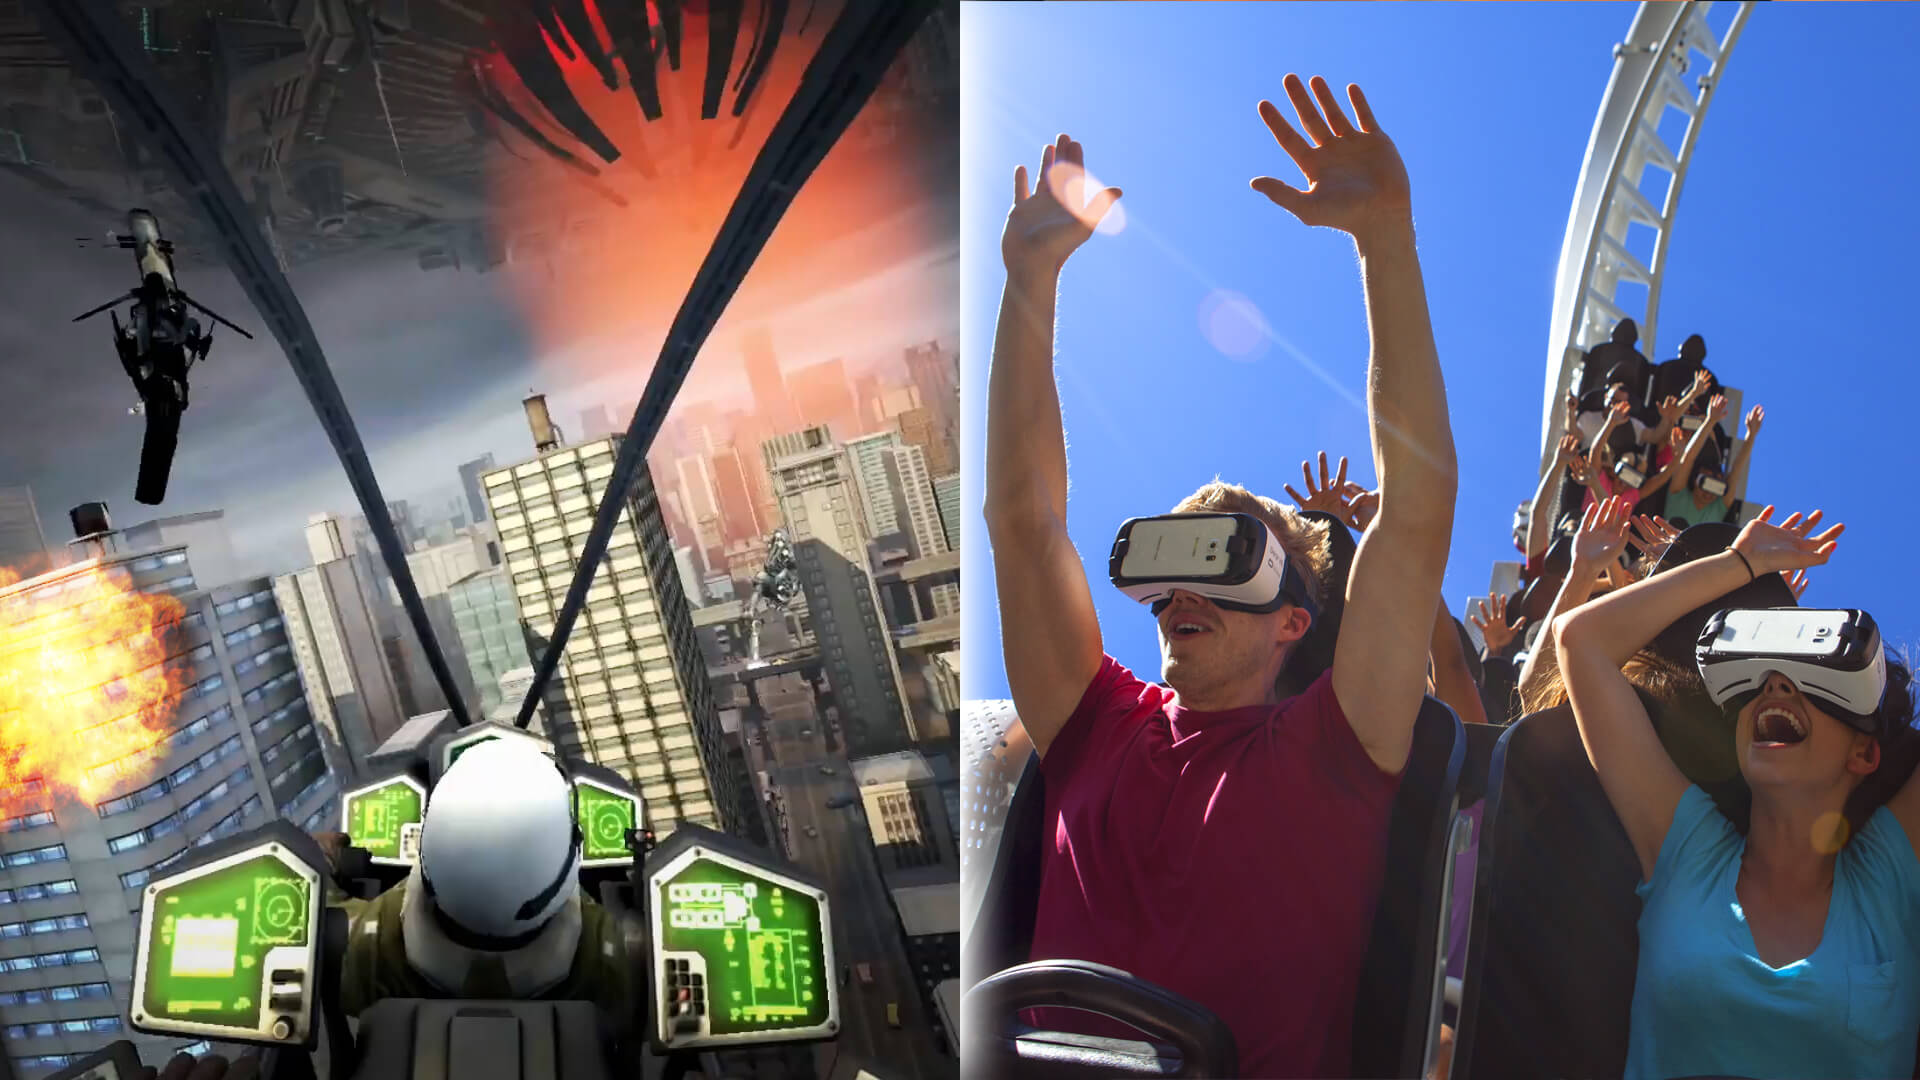 Six Flags Has America's First VR Roller Coaster